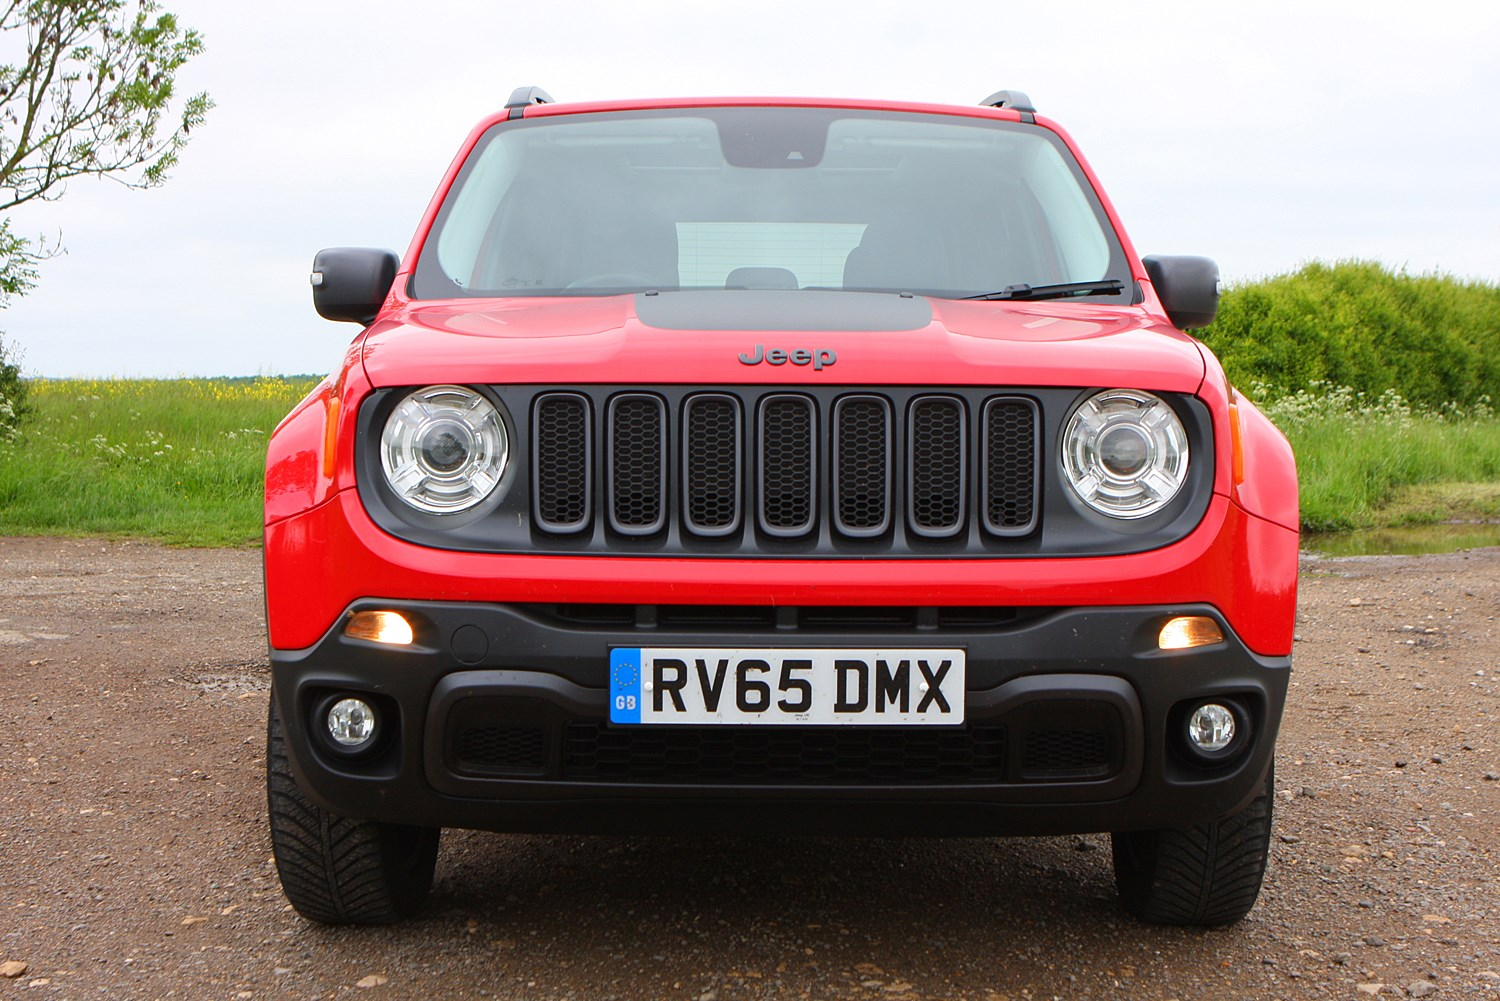 jeep renegade for sale used jeep renegade cars parkers autos post. Black Bedroom Furniture Sets. Home Design Ideas